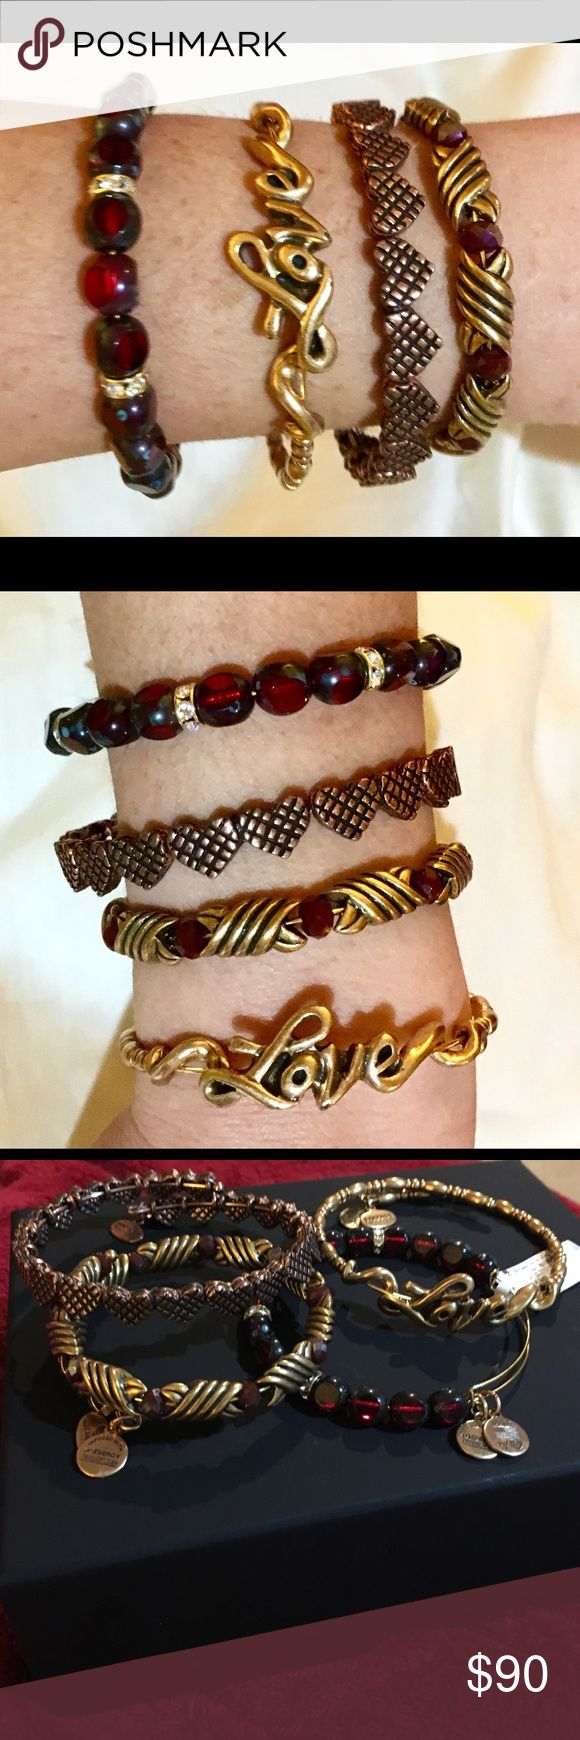 Set of 4 Alex and Ani Retail $202!! Get the Look and save a ton!  All brand-new, this coordinating set includes: 4 beautiful, Authentic, never worn , Alex and Ani pieces! 1) eden beaded bangle in Crimson, RG Retail $48 2) Love Wrap, RG Retail $48 3) Romance Heart Wrap, ROG Retail $58 4) Forest's Blessing Wrap Retail $48  Total retail value $202!!!! Alex & Ani Jewelry